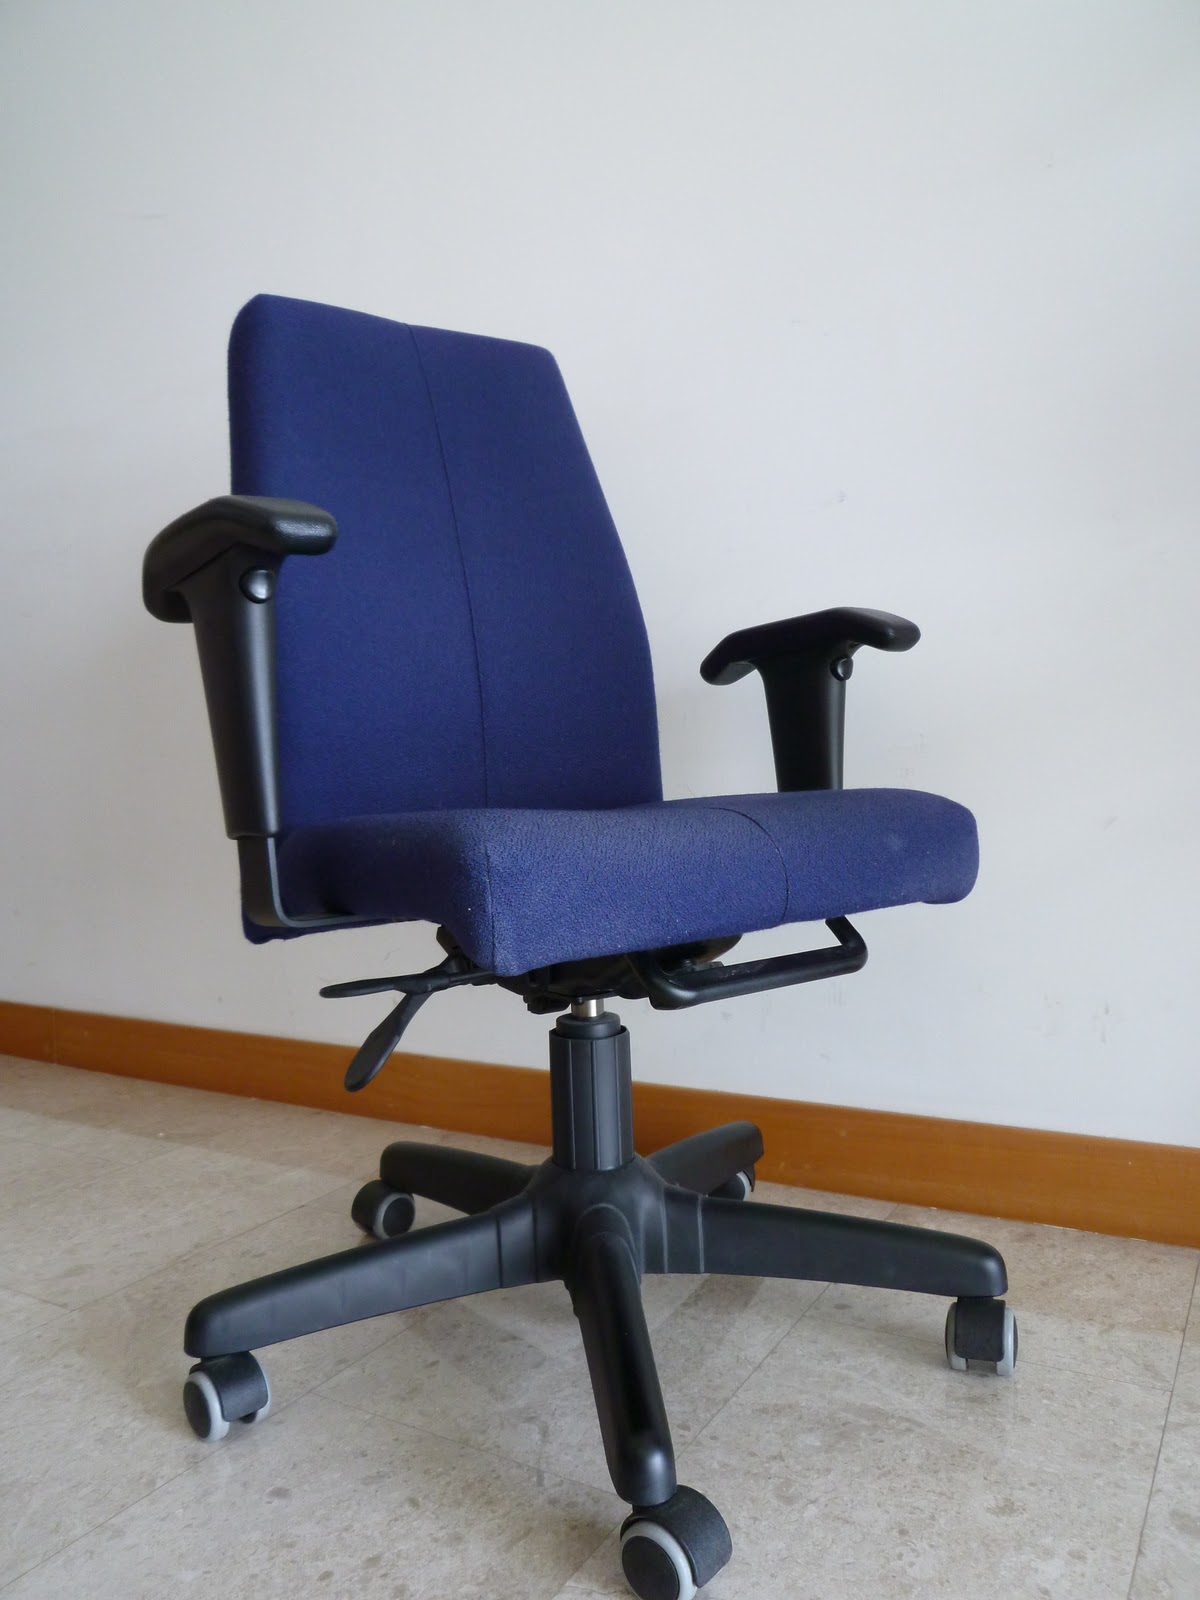 ergonomic esthetician chair small swivel chairs for living room zeeto 39s singapore garage sale selling fast